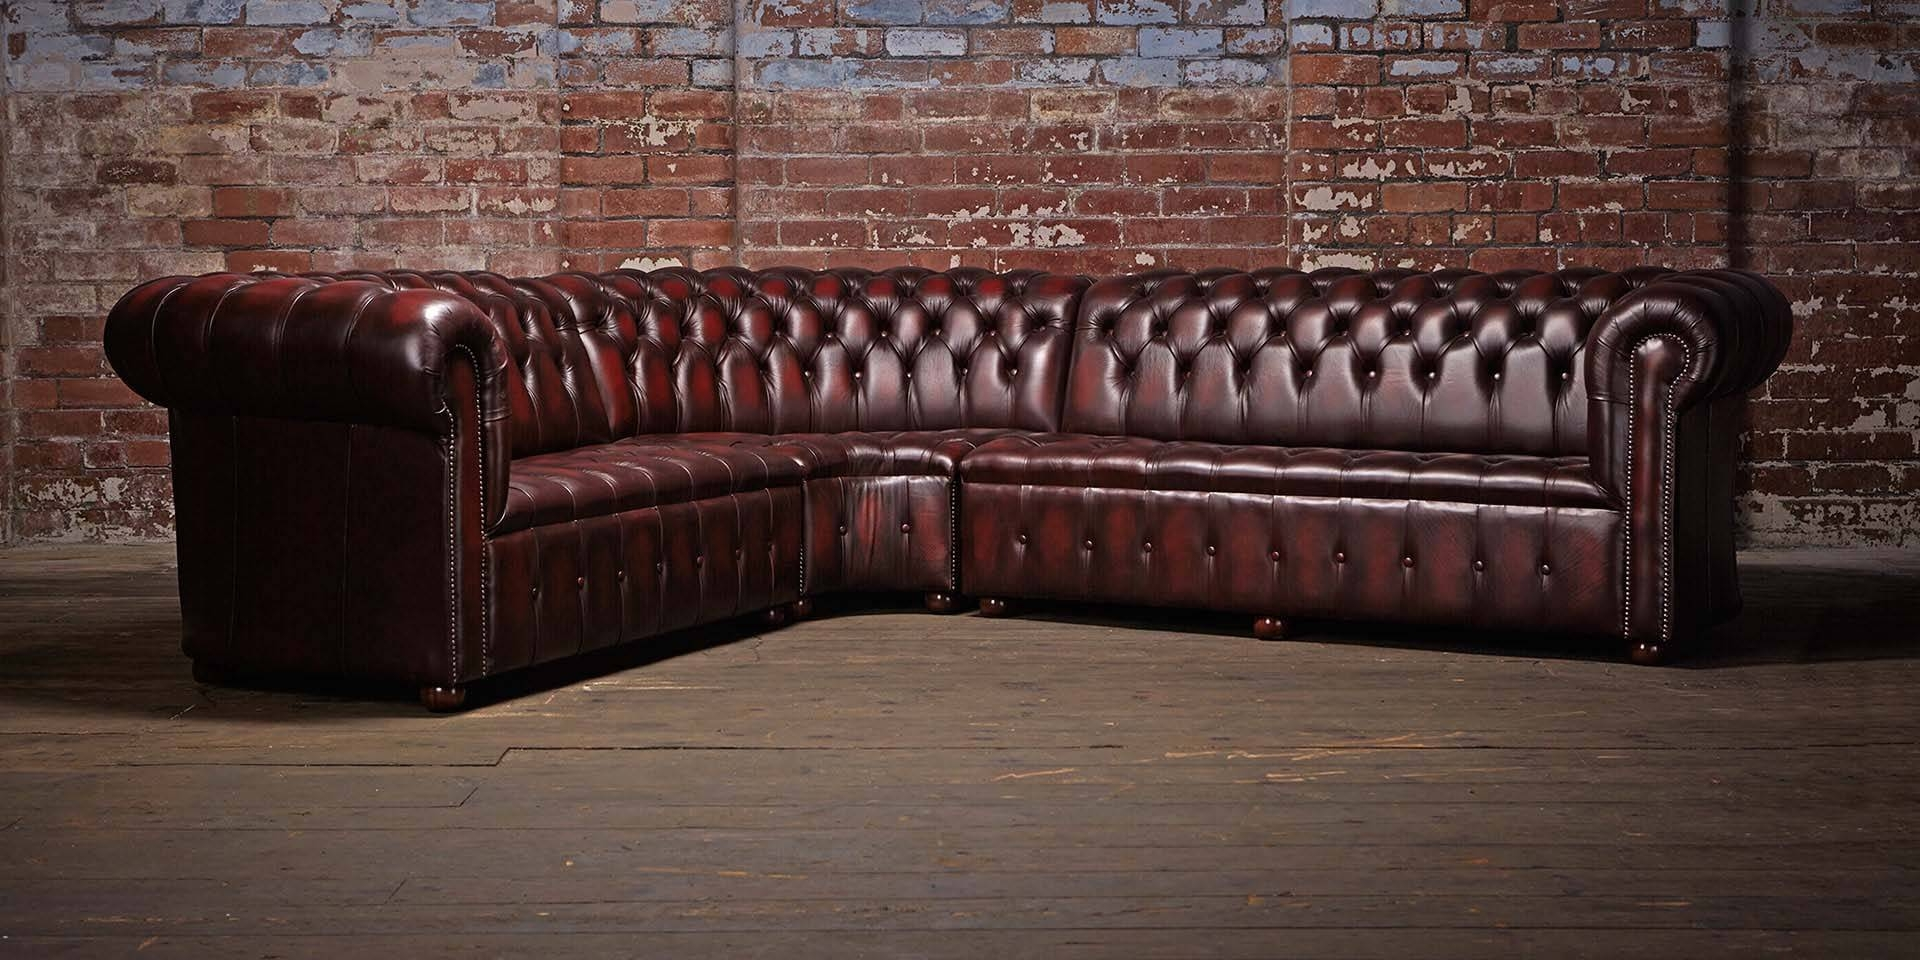 Chesterfield Sofas 99 With Chesterfield Sofas | Jinanhongyu for Red Chesterfield Chairs (Image 6 of 15)